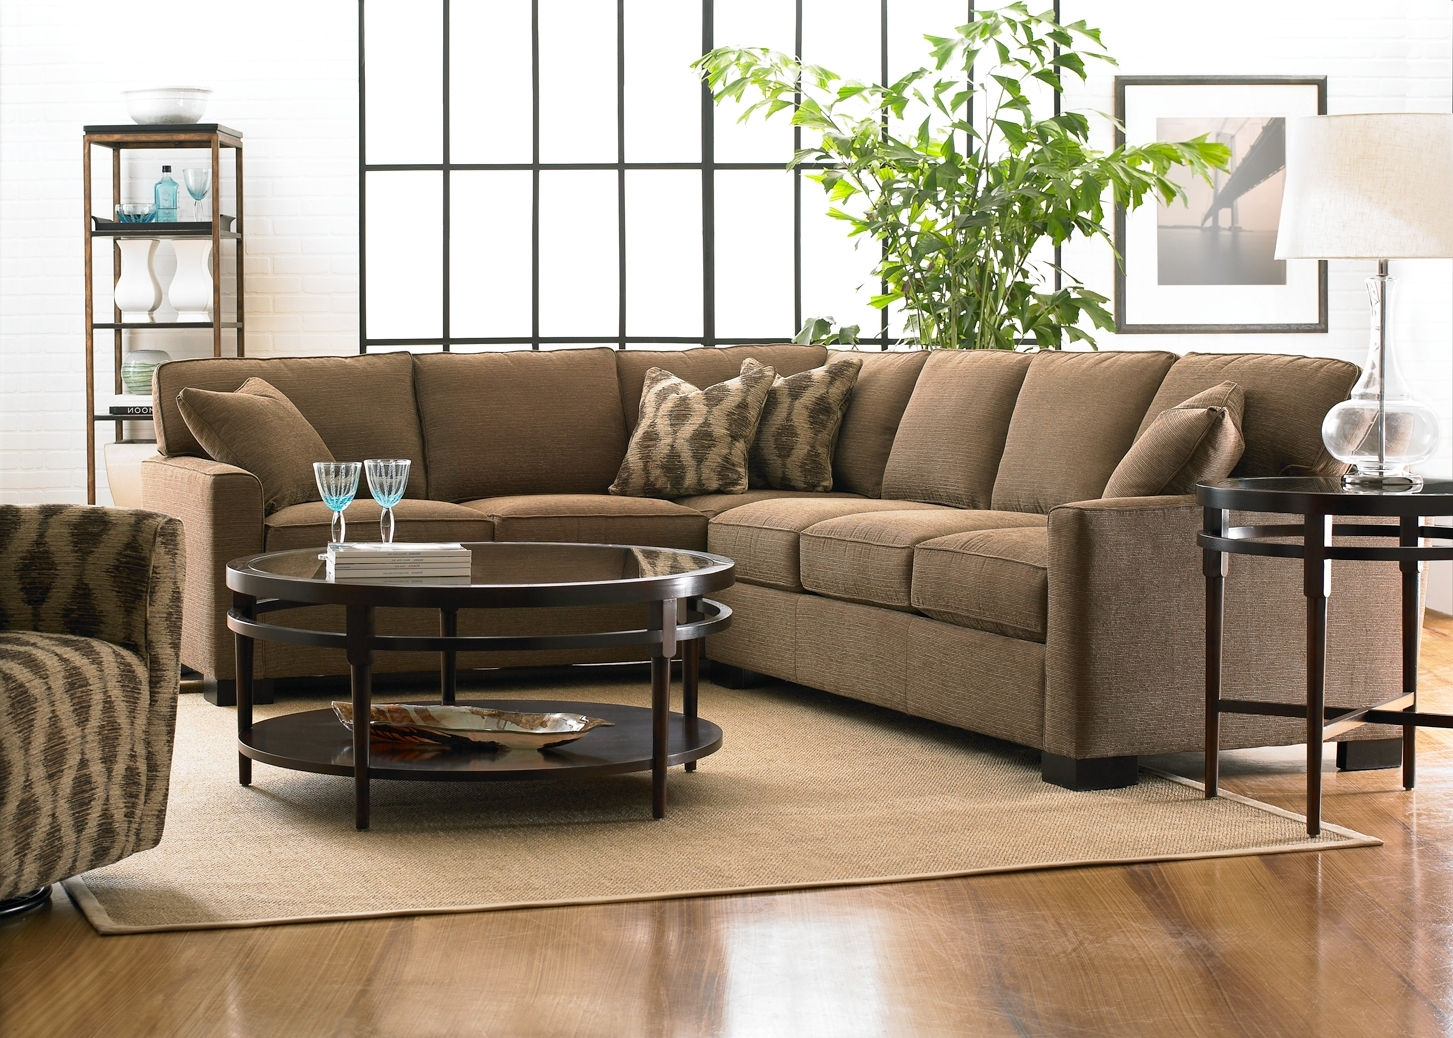 Favorite Sectional Sofas In Small Spaces With Regard To Reclining Sectional Sofas For Small Spaces (View 4 of 15)